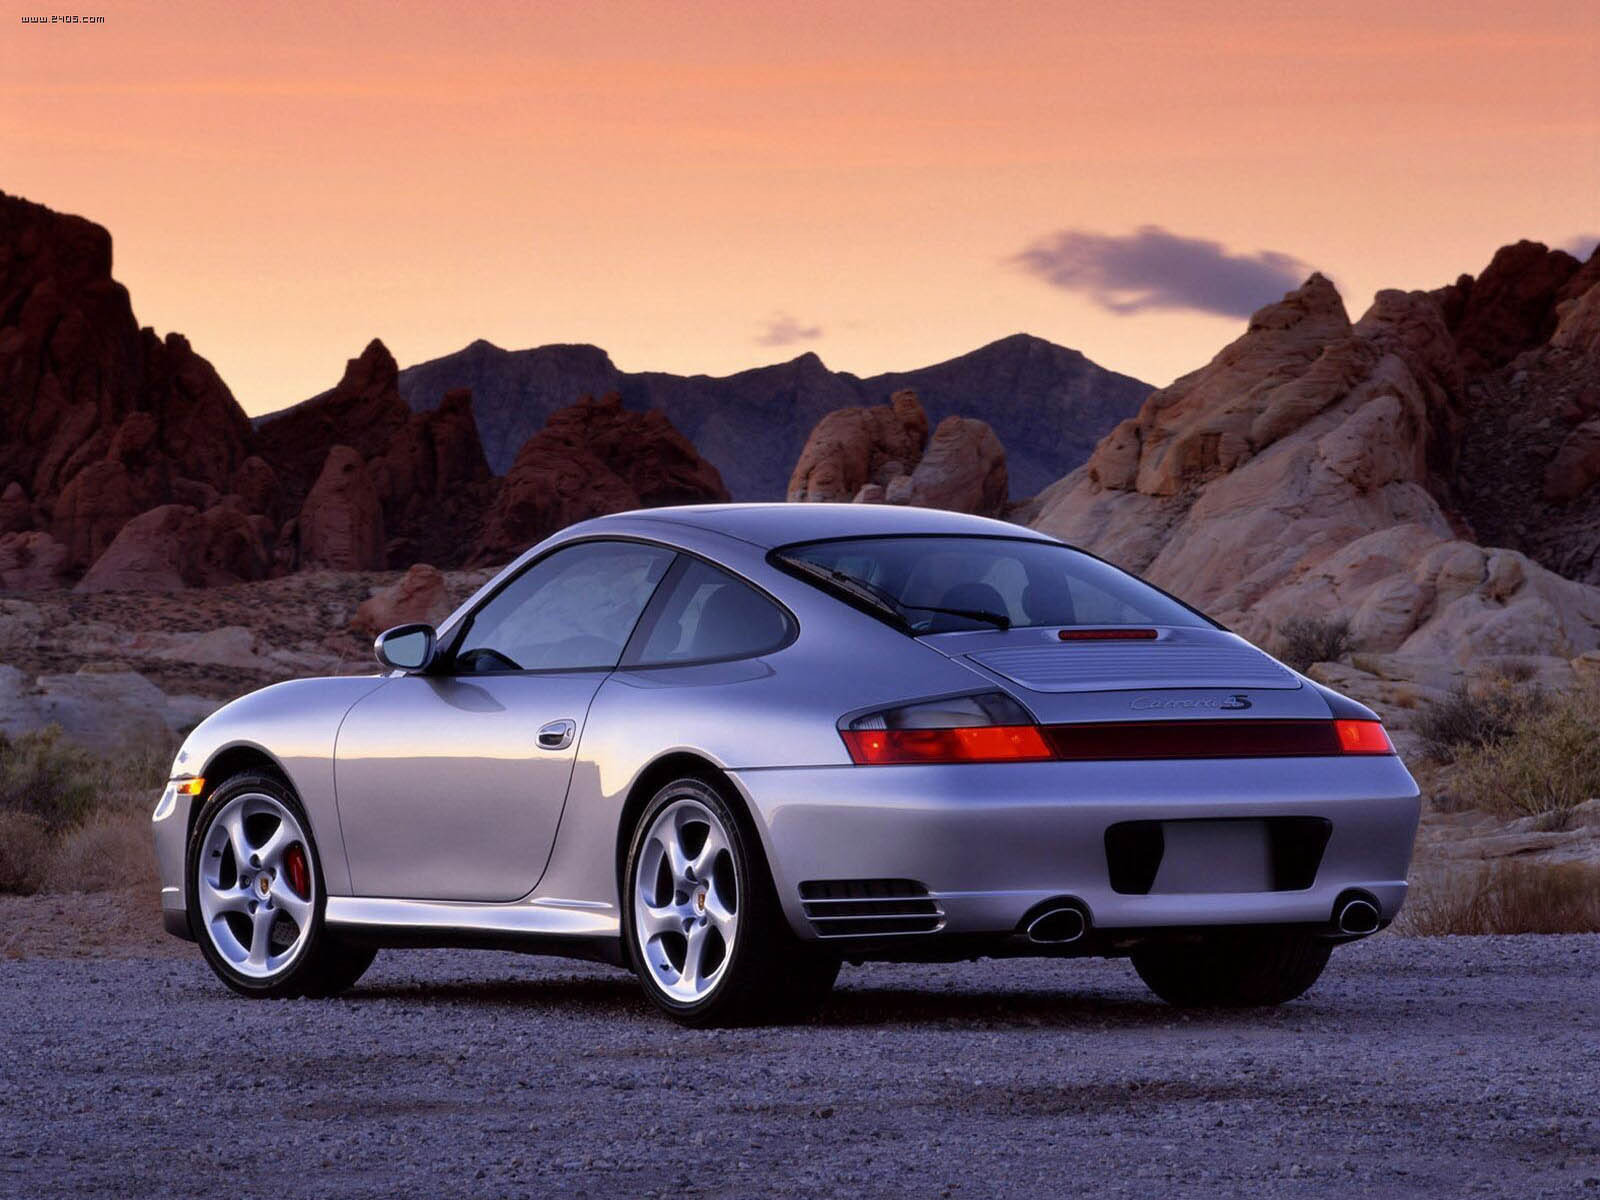 2004 porsche 911 carrera 4s 996 picture 18668 car review top speed. Black Bedroom Furniture Sets. Home Design Ideas